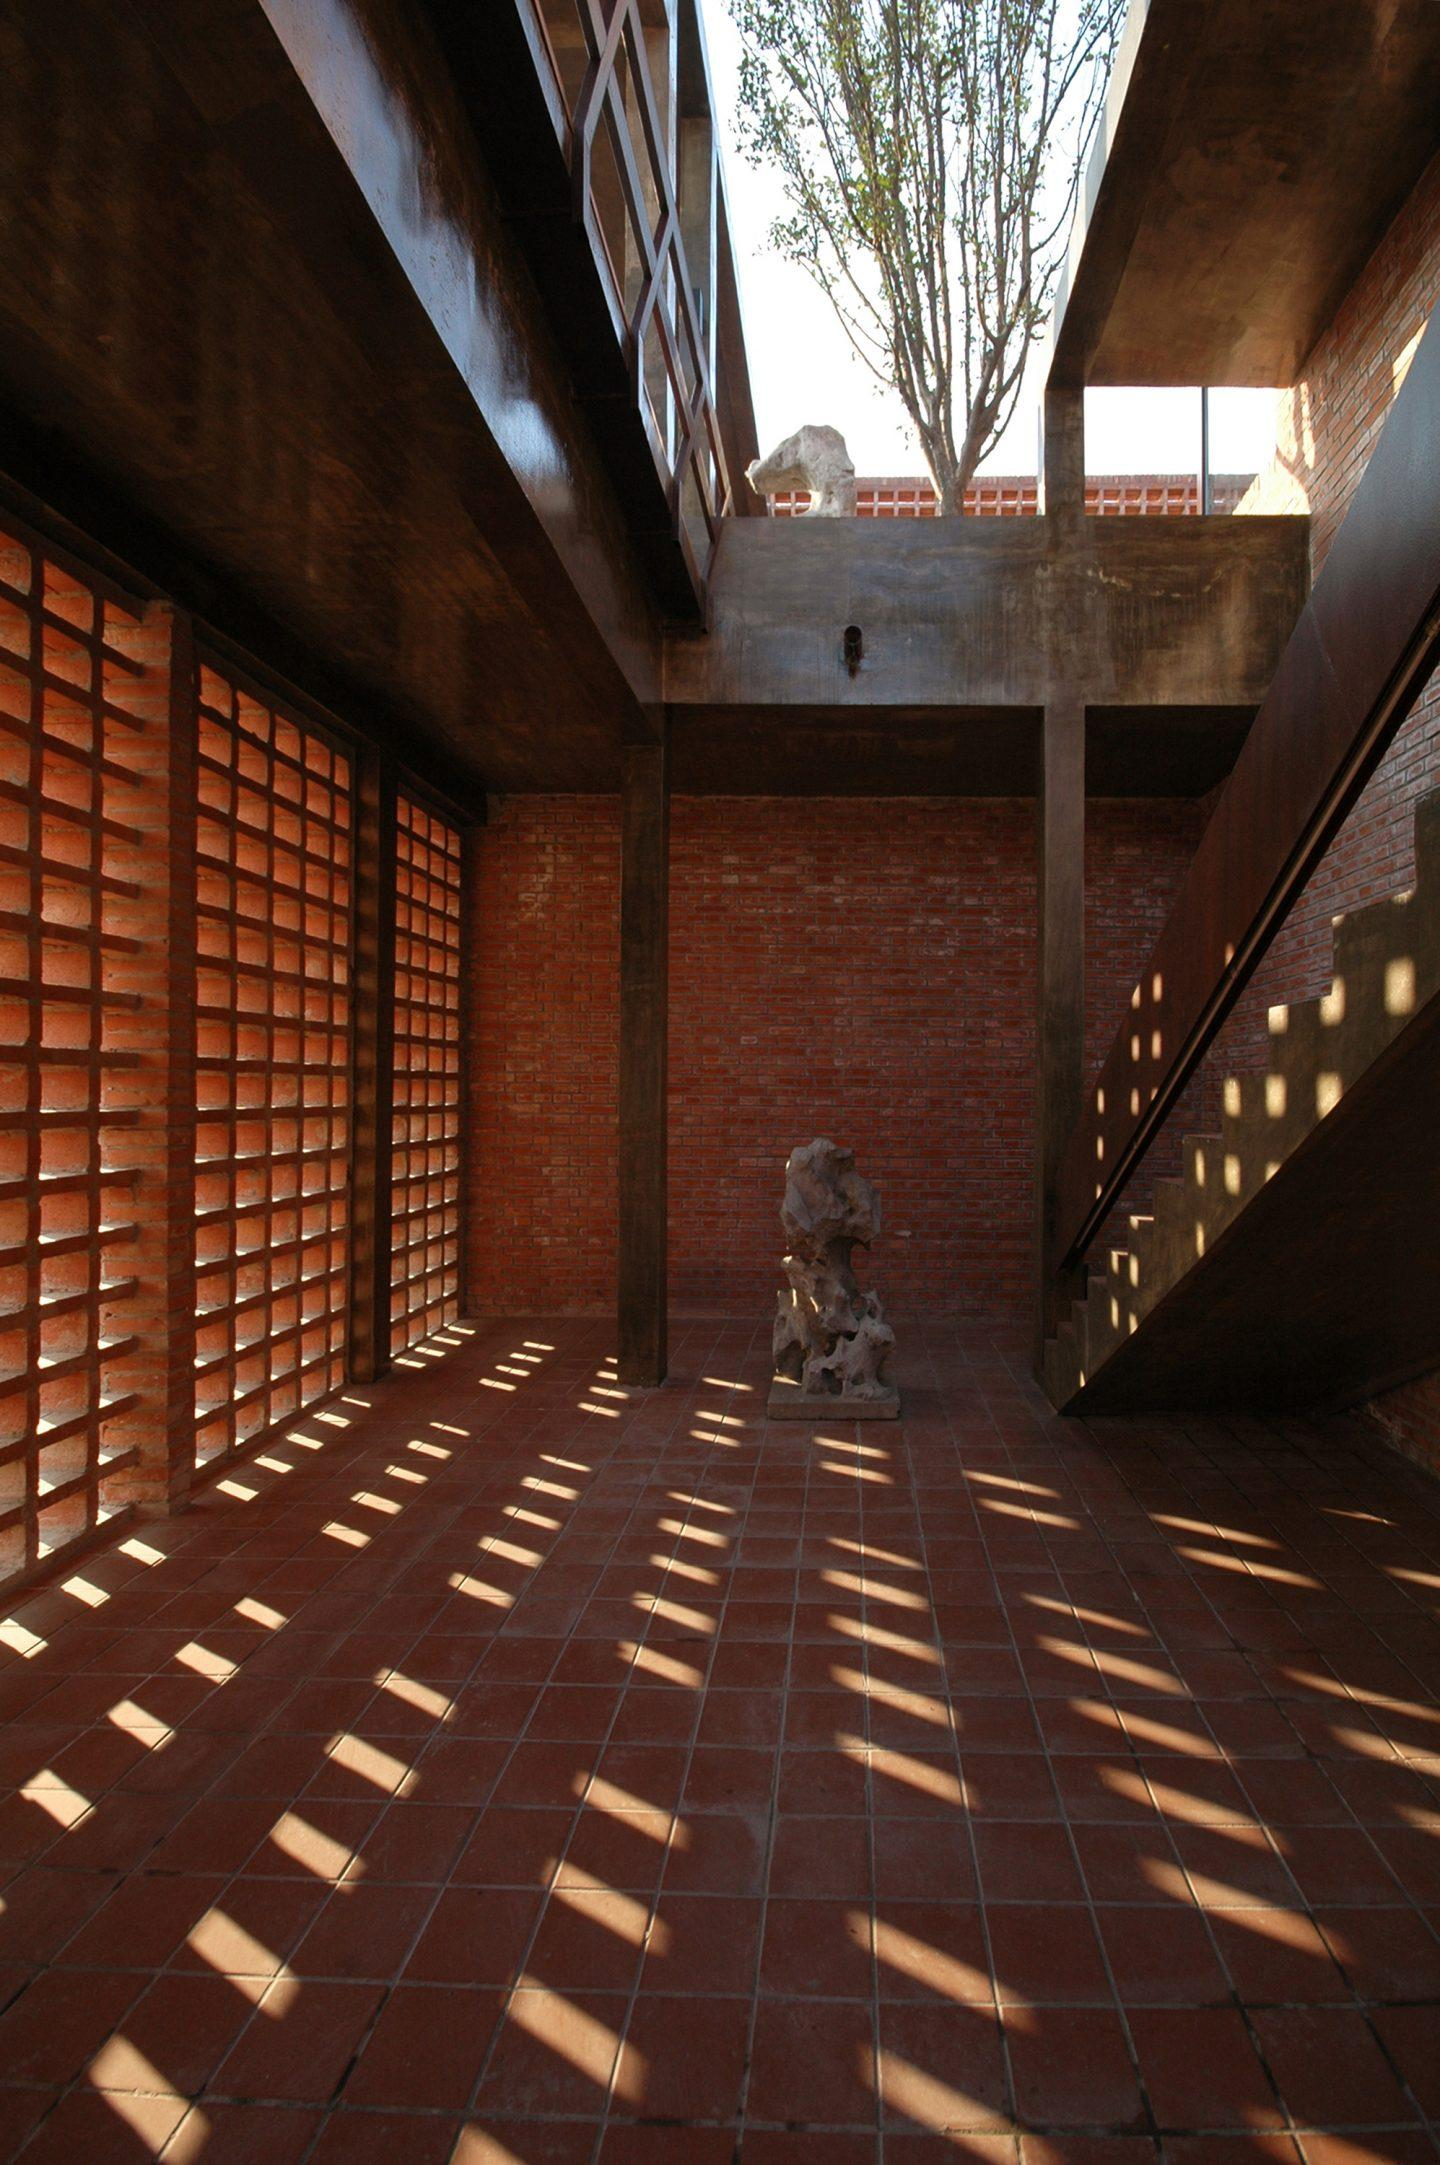 IGNANT-Architecture-Atelier-100s+1-Xiang-Jing-Qu-Guangci-005